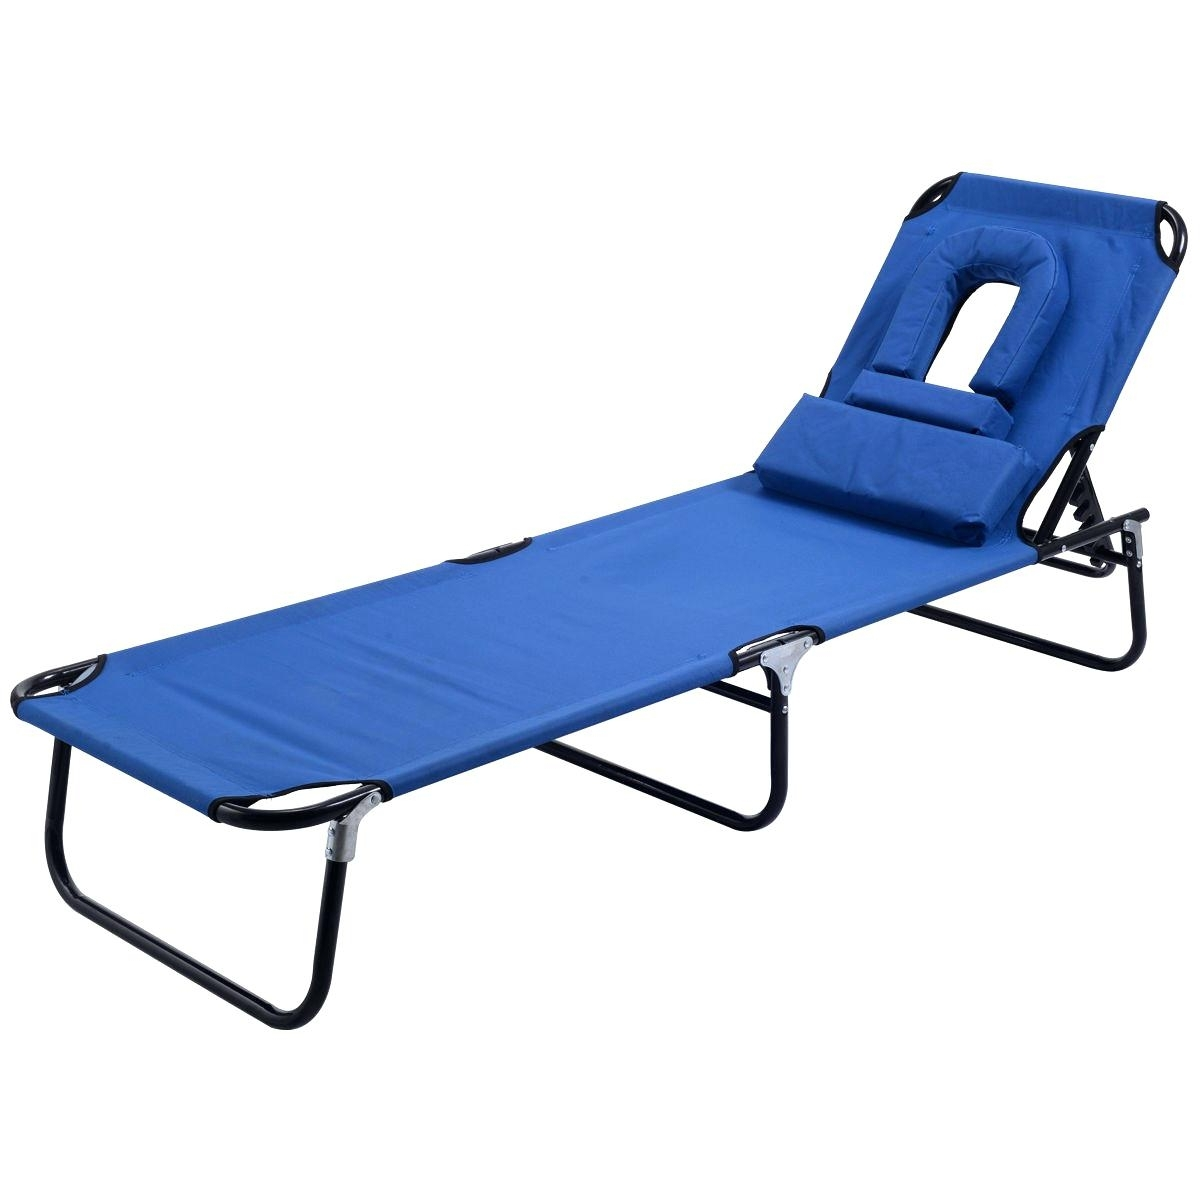 Widely Used Articles With Maureen Outdoor Folding Chaise Lounge Chairs 2 Pack Inside Maureen Outdoor Folding Chaise Lounge Chairs (View 14 of 15)